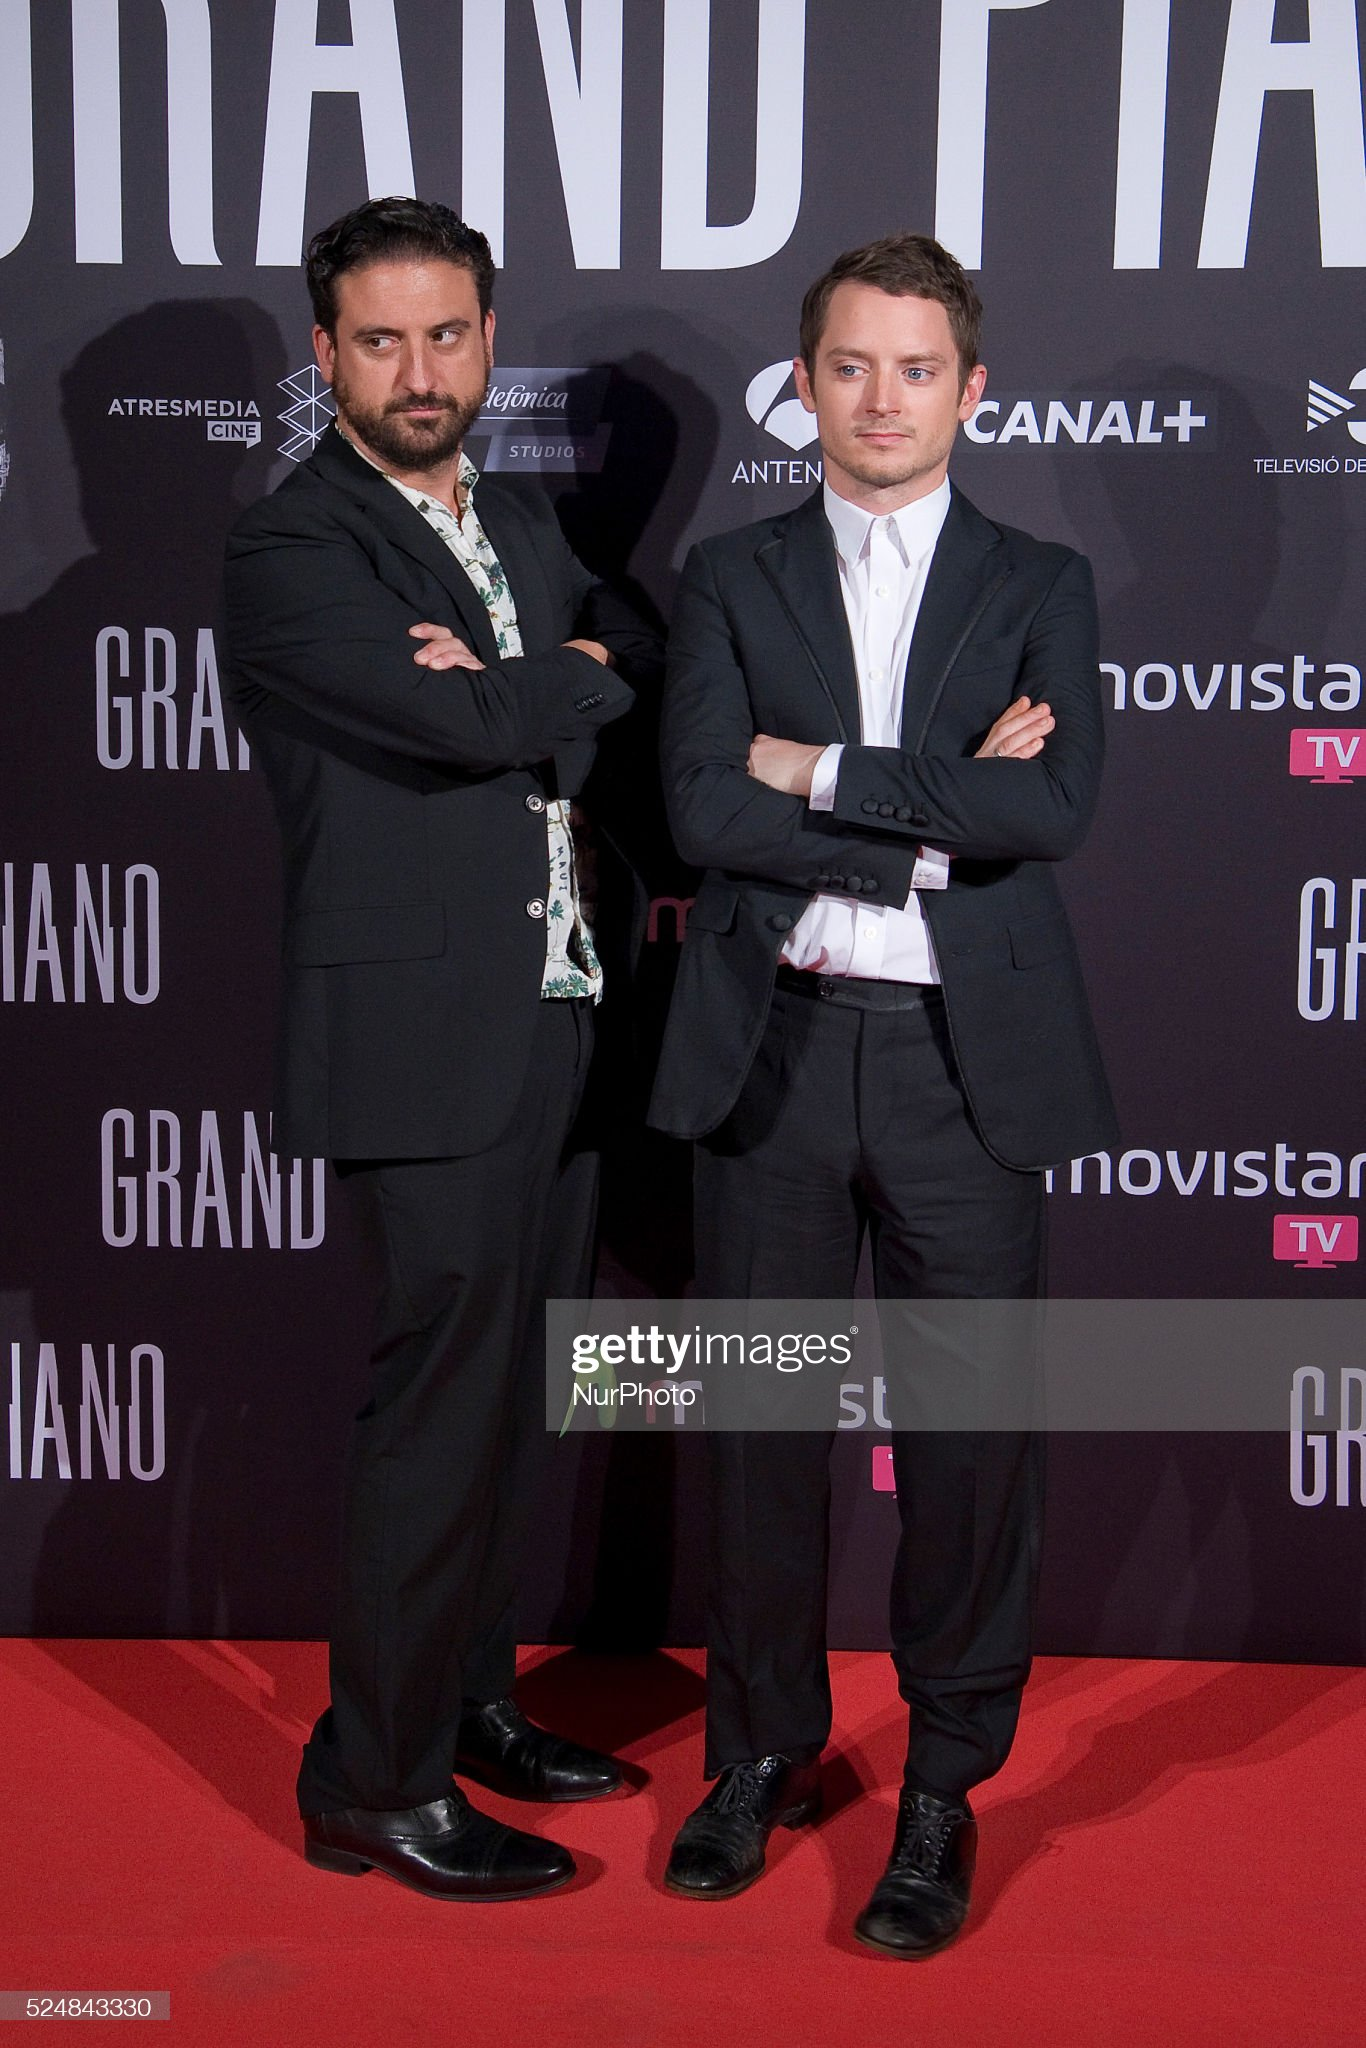 ¿Cuánto mide Eugenio Mira? - Altura Director-and-lead-actor-elijah-wood-madrid-visit-to-attend-the-of-picture-id524843330?s=2048x2048